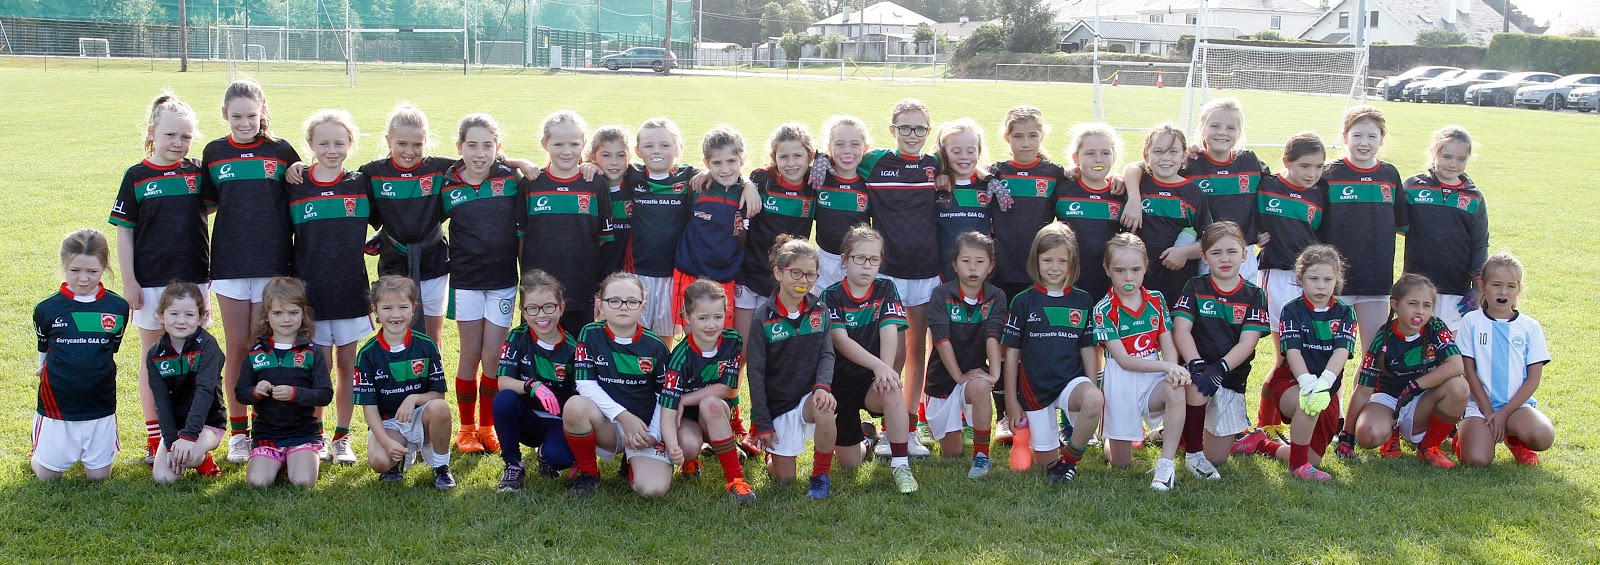 Garrycastle Ladies players from the Under 7, Under 8, Under 9 and Under 10 squad pictured ahead of Round 2 of the Street Leagues on Sunday morning.